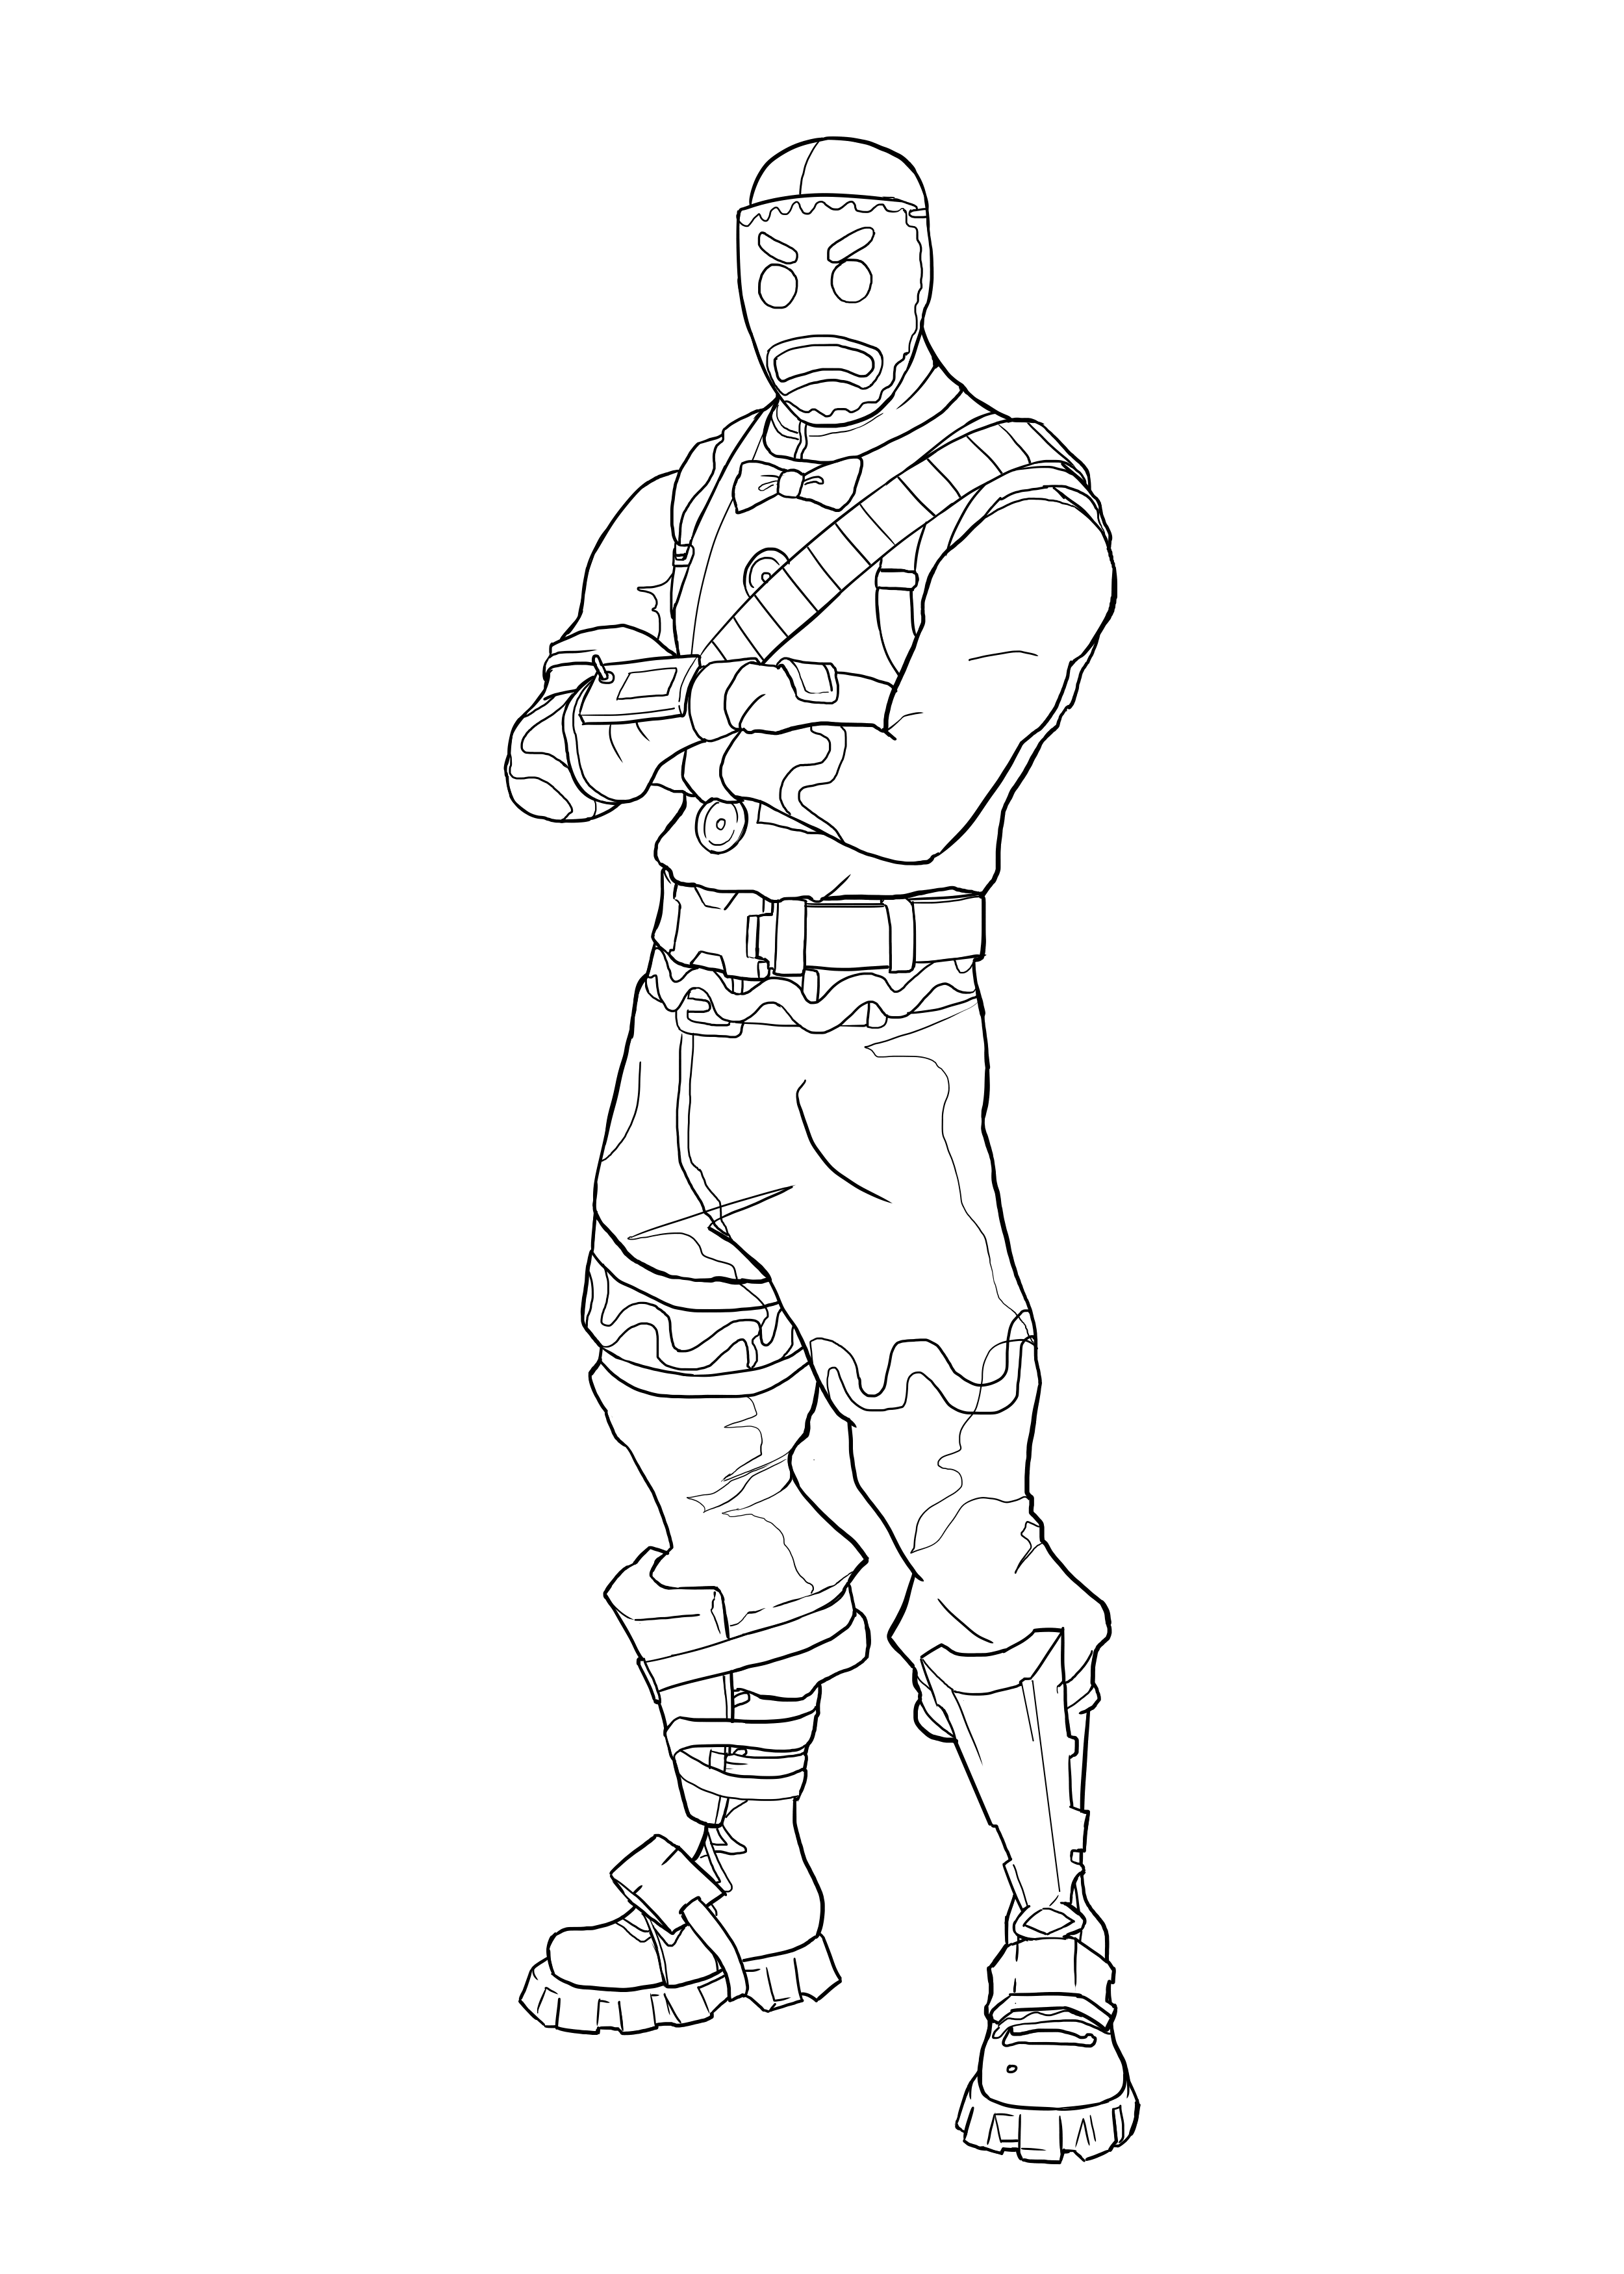 Fortnite Lynx Skin Coloring Pages